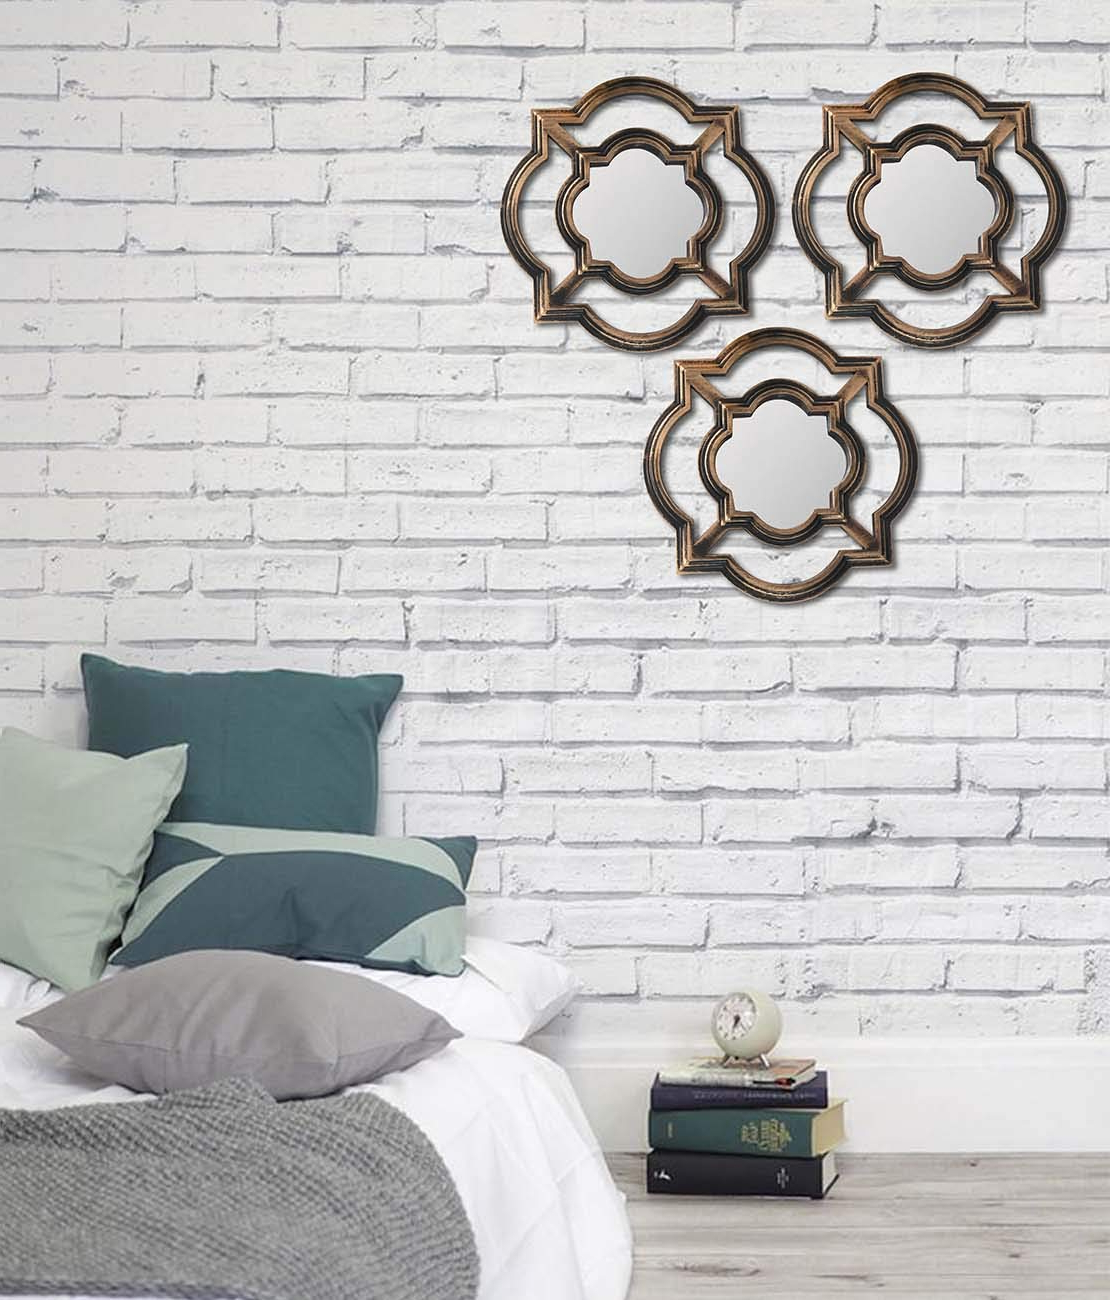 Decorative Living Room Wall Mirrors Within 2019 Art Street  Set Of 3 Beautiful Large Mirror For Bathroom,livingroom Wall  Mirror,decorative In Round Shape (11 X 11 Inchs) (Gallery 6 of 20)